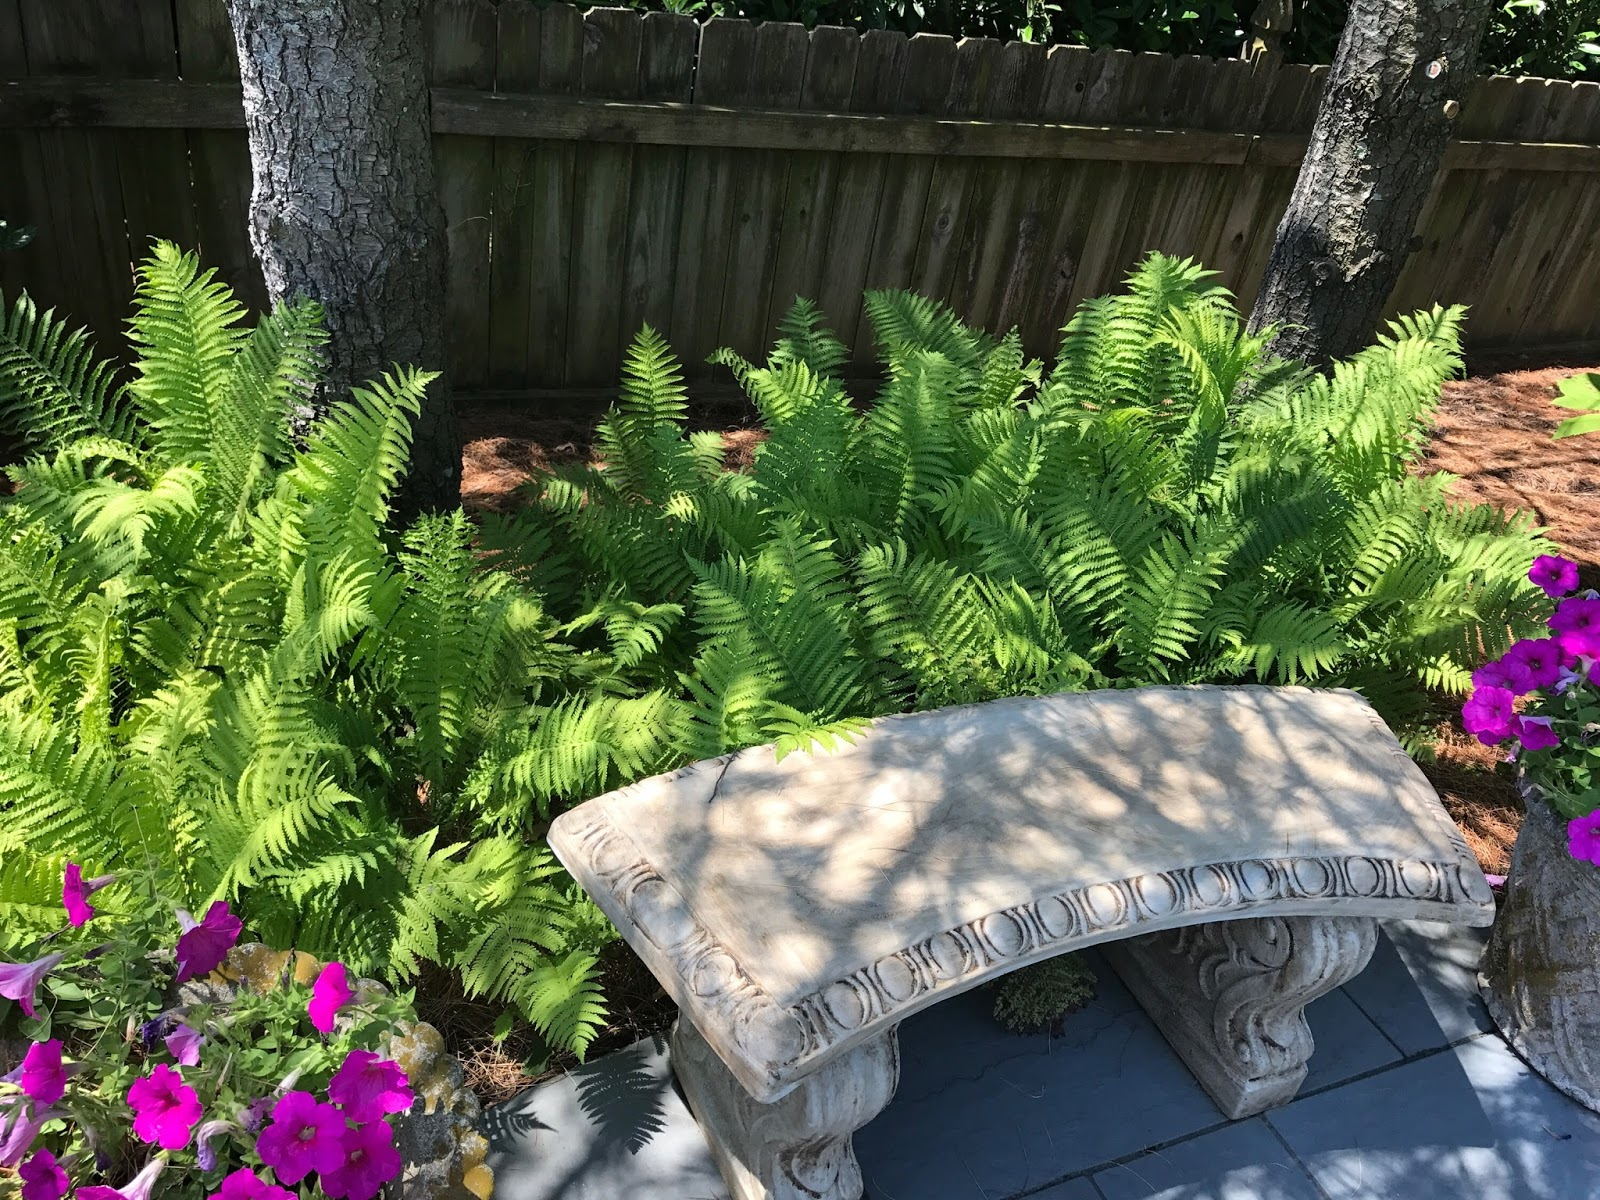 Stone bench and ferns